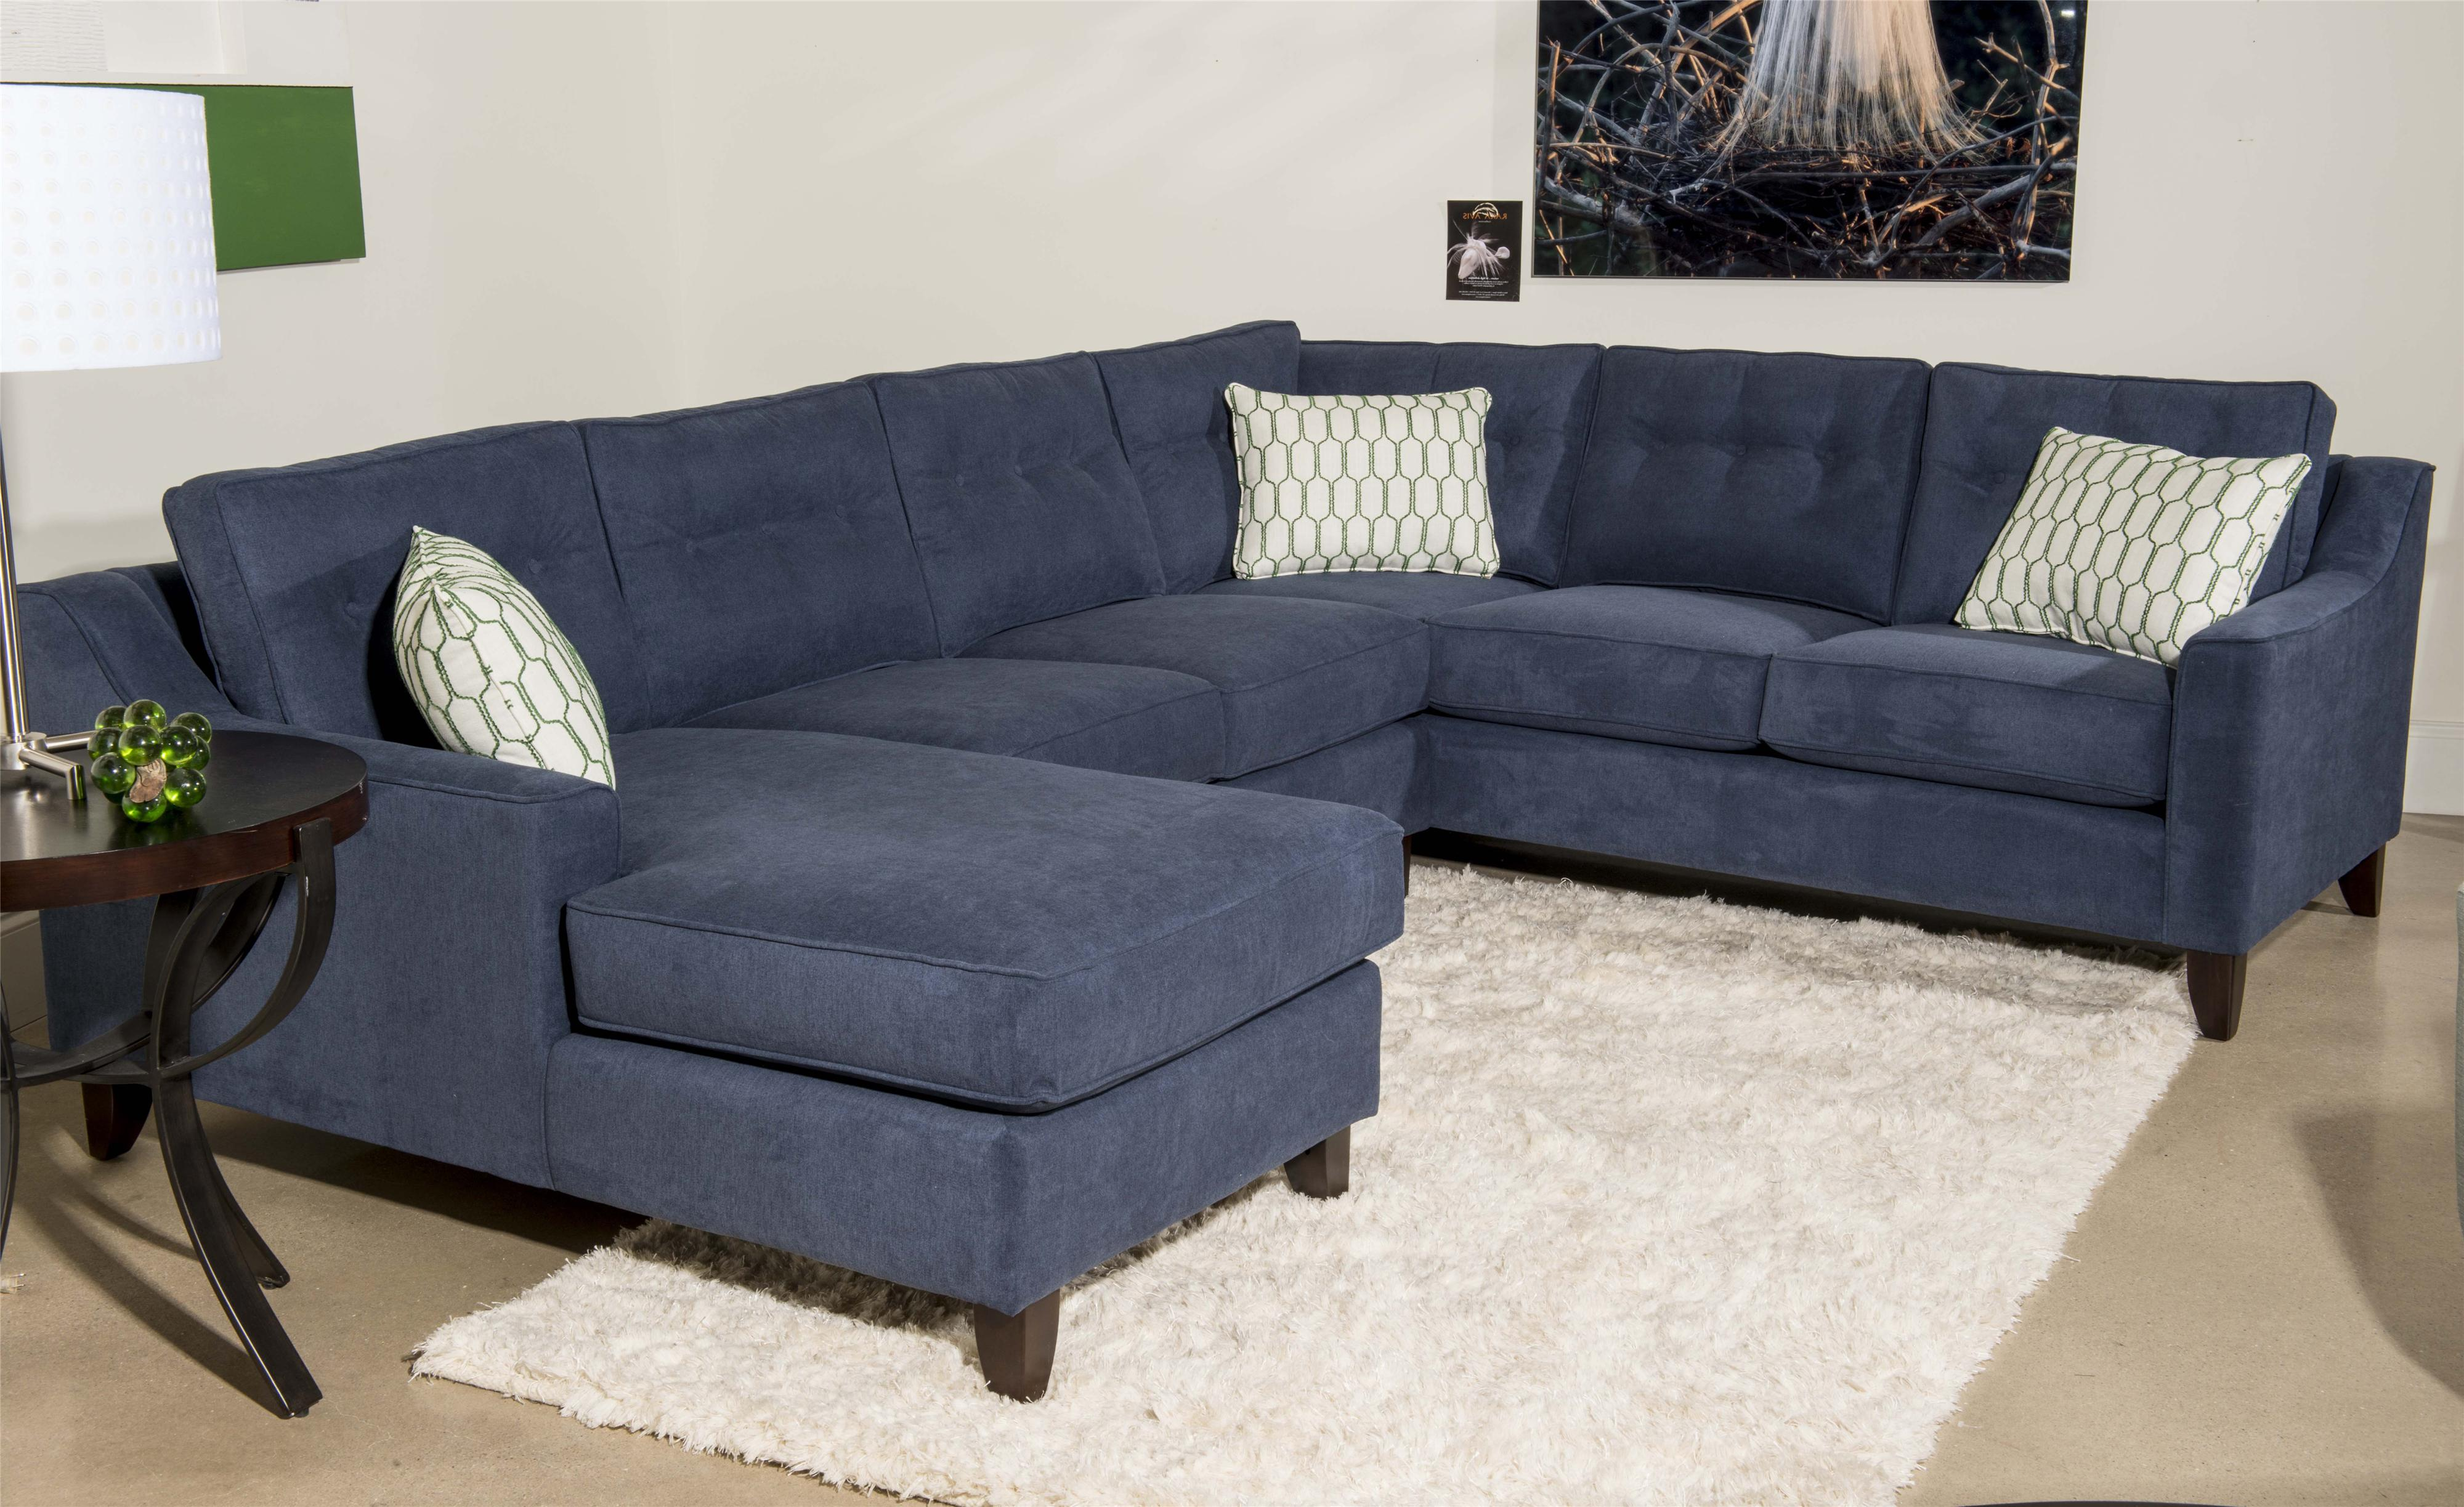 Contemporary 3 Piece Sectional Sofa with Chaise by Klaussner